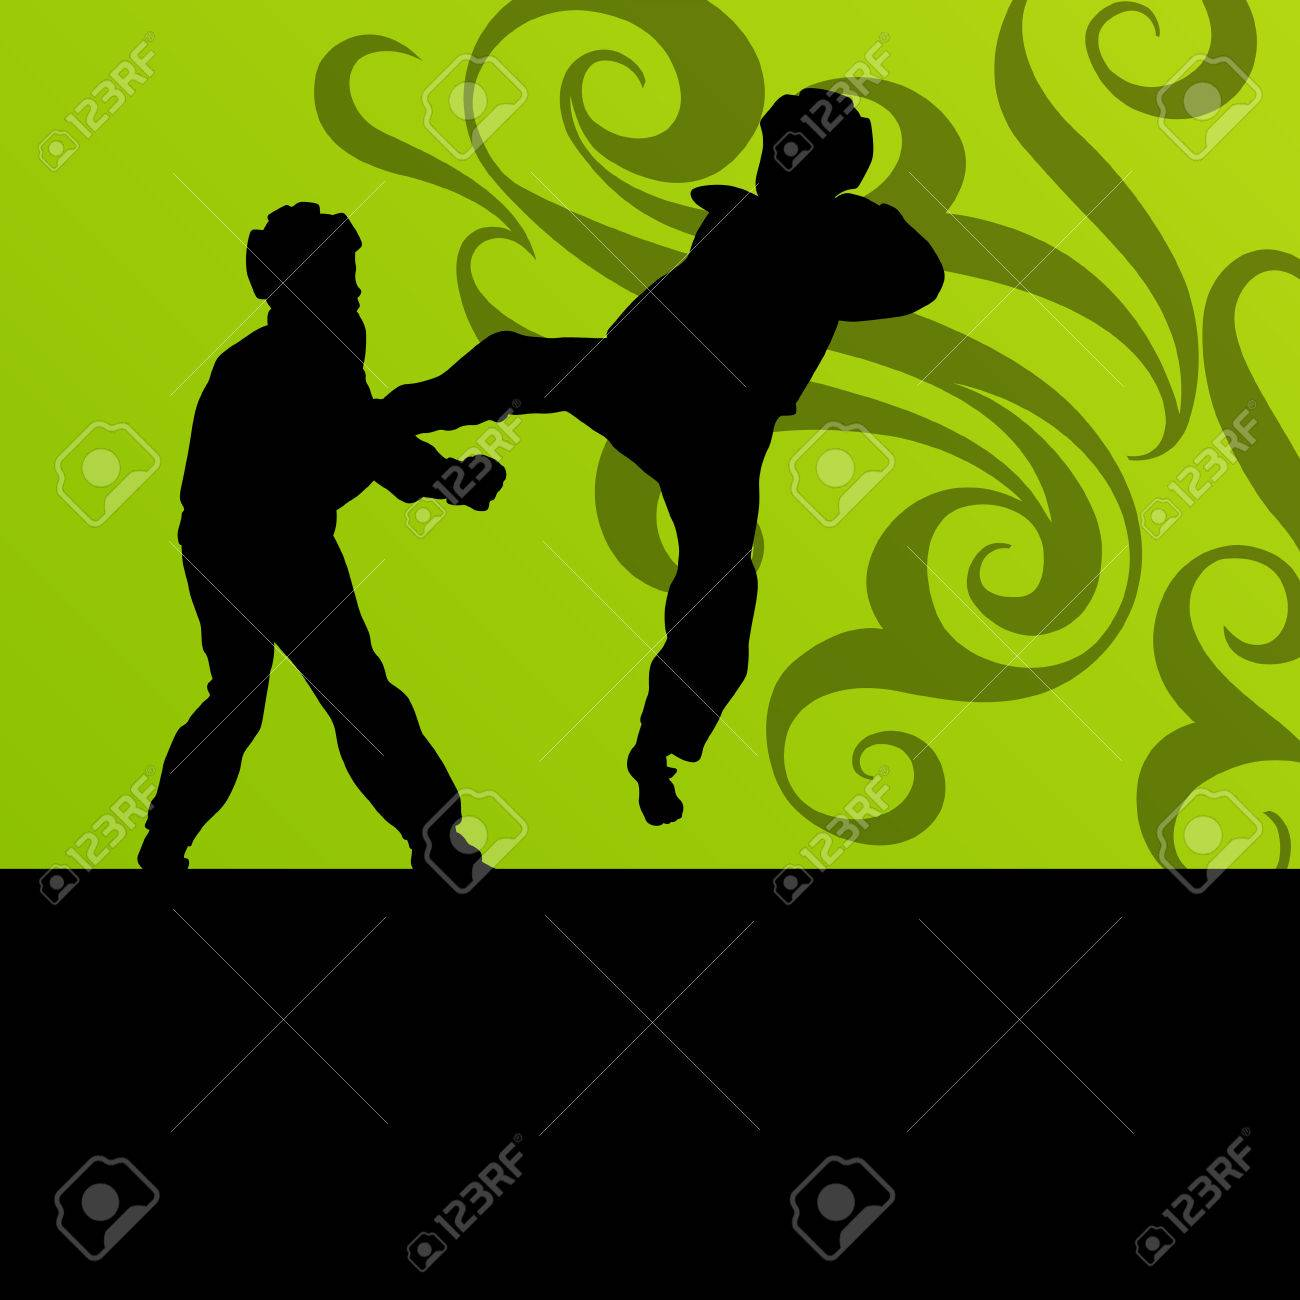 Active tae kwon do martial arts fighters combat fighting and kicking sport silhouettes illustration background vector Stock Vector - 22893776